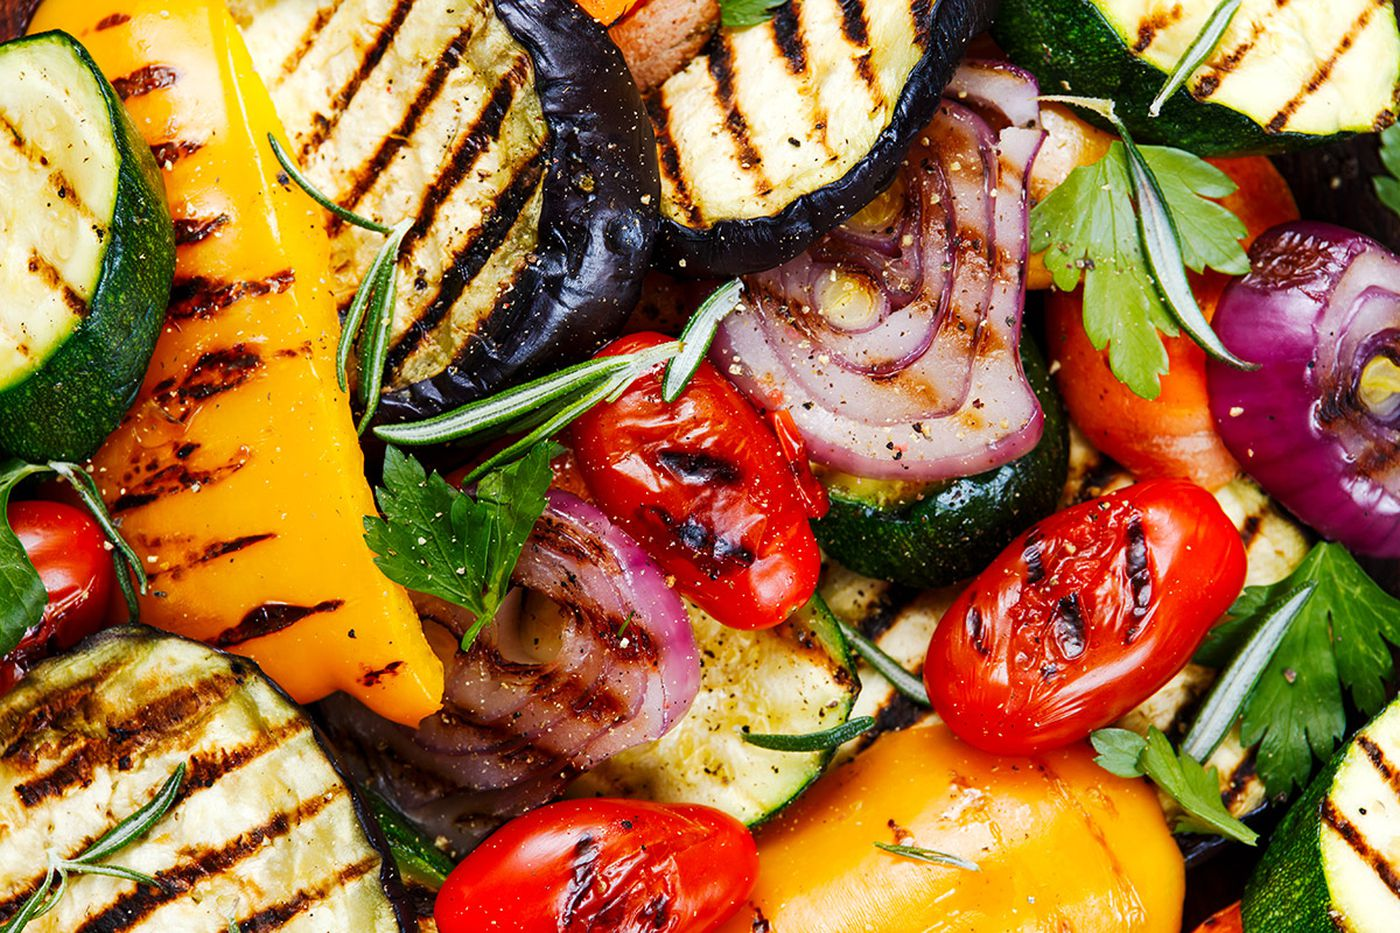 How to: Add more seasonal local produce into your meals this summer